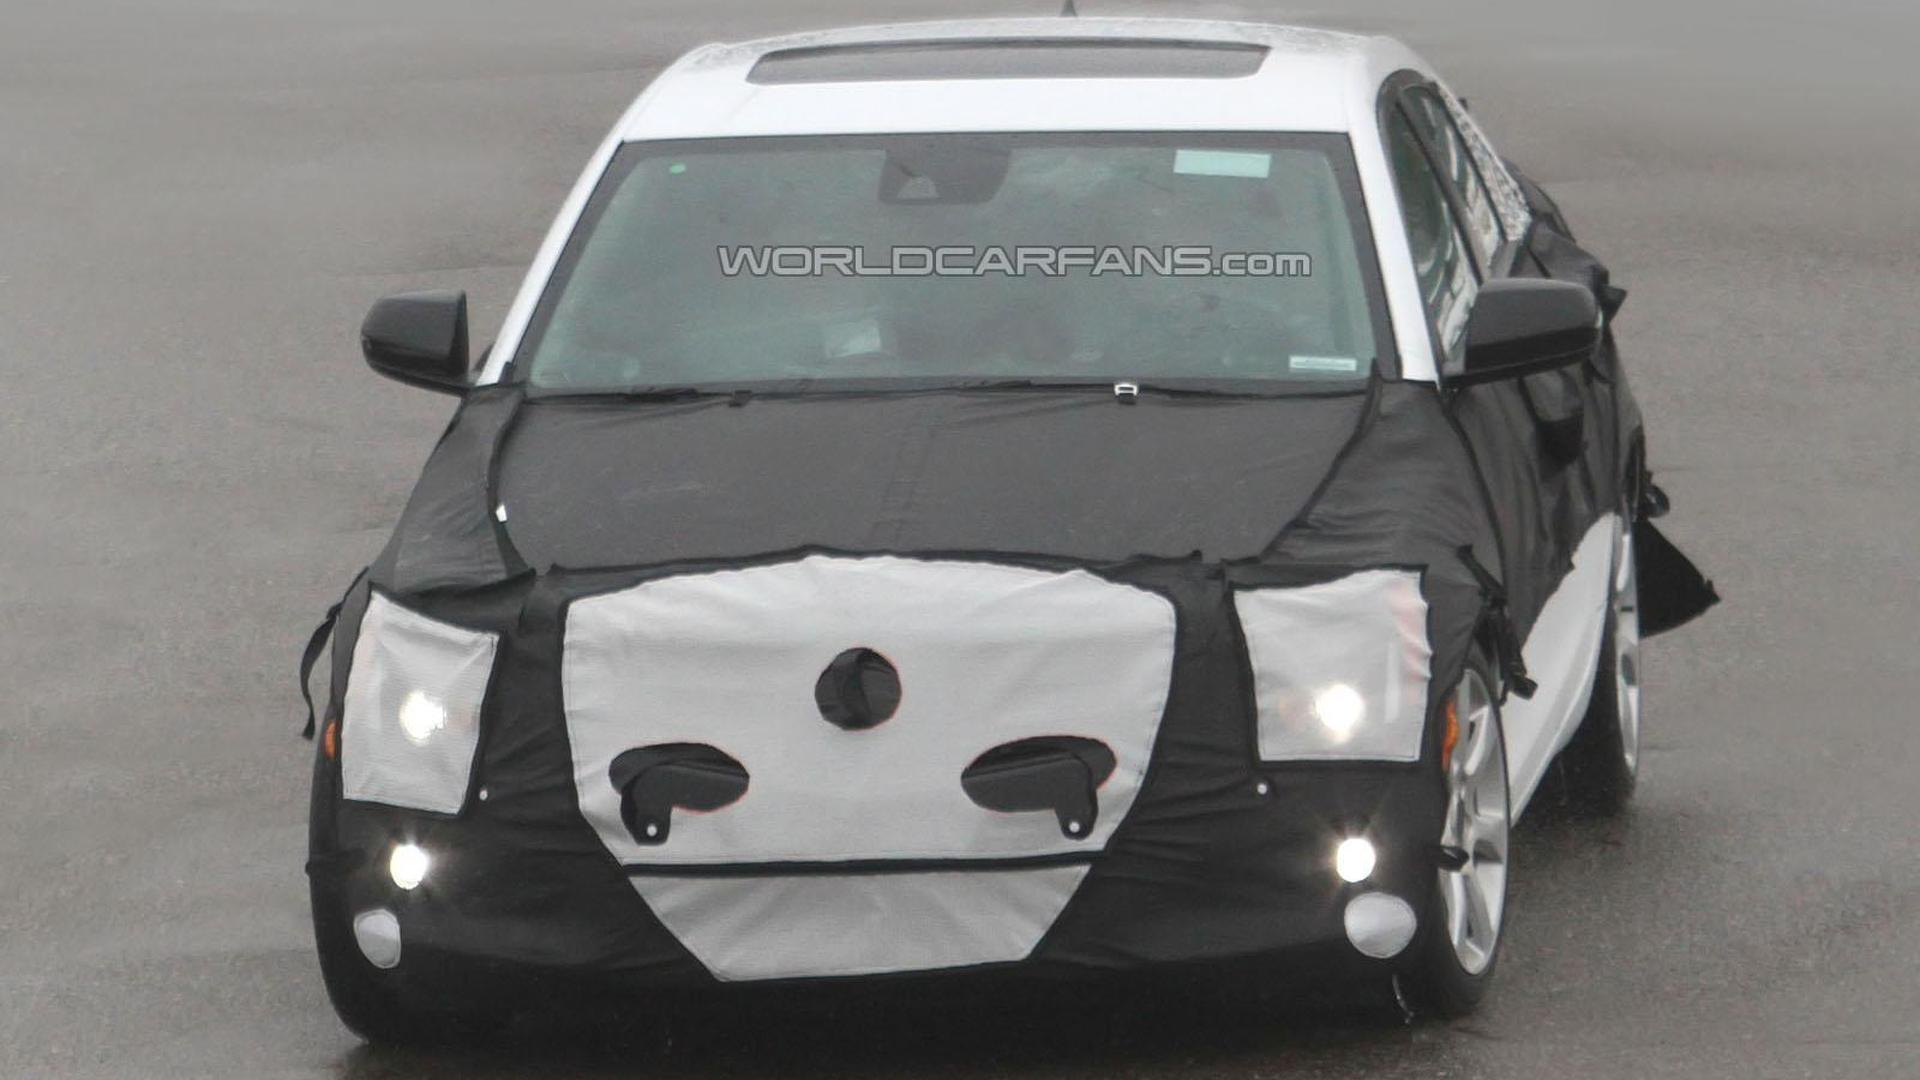 2013 Cadillac ATS promises to be outstanding [video]